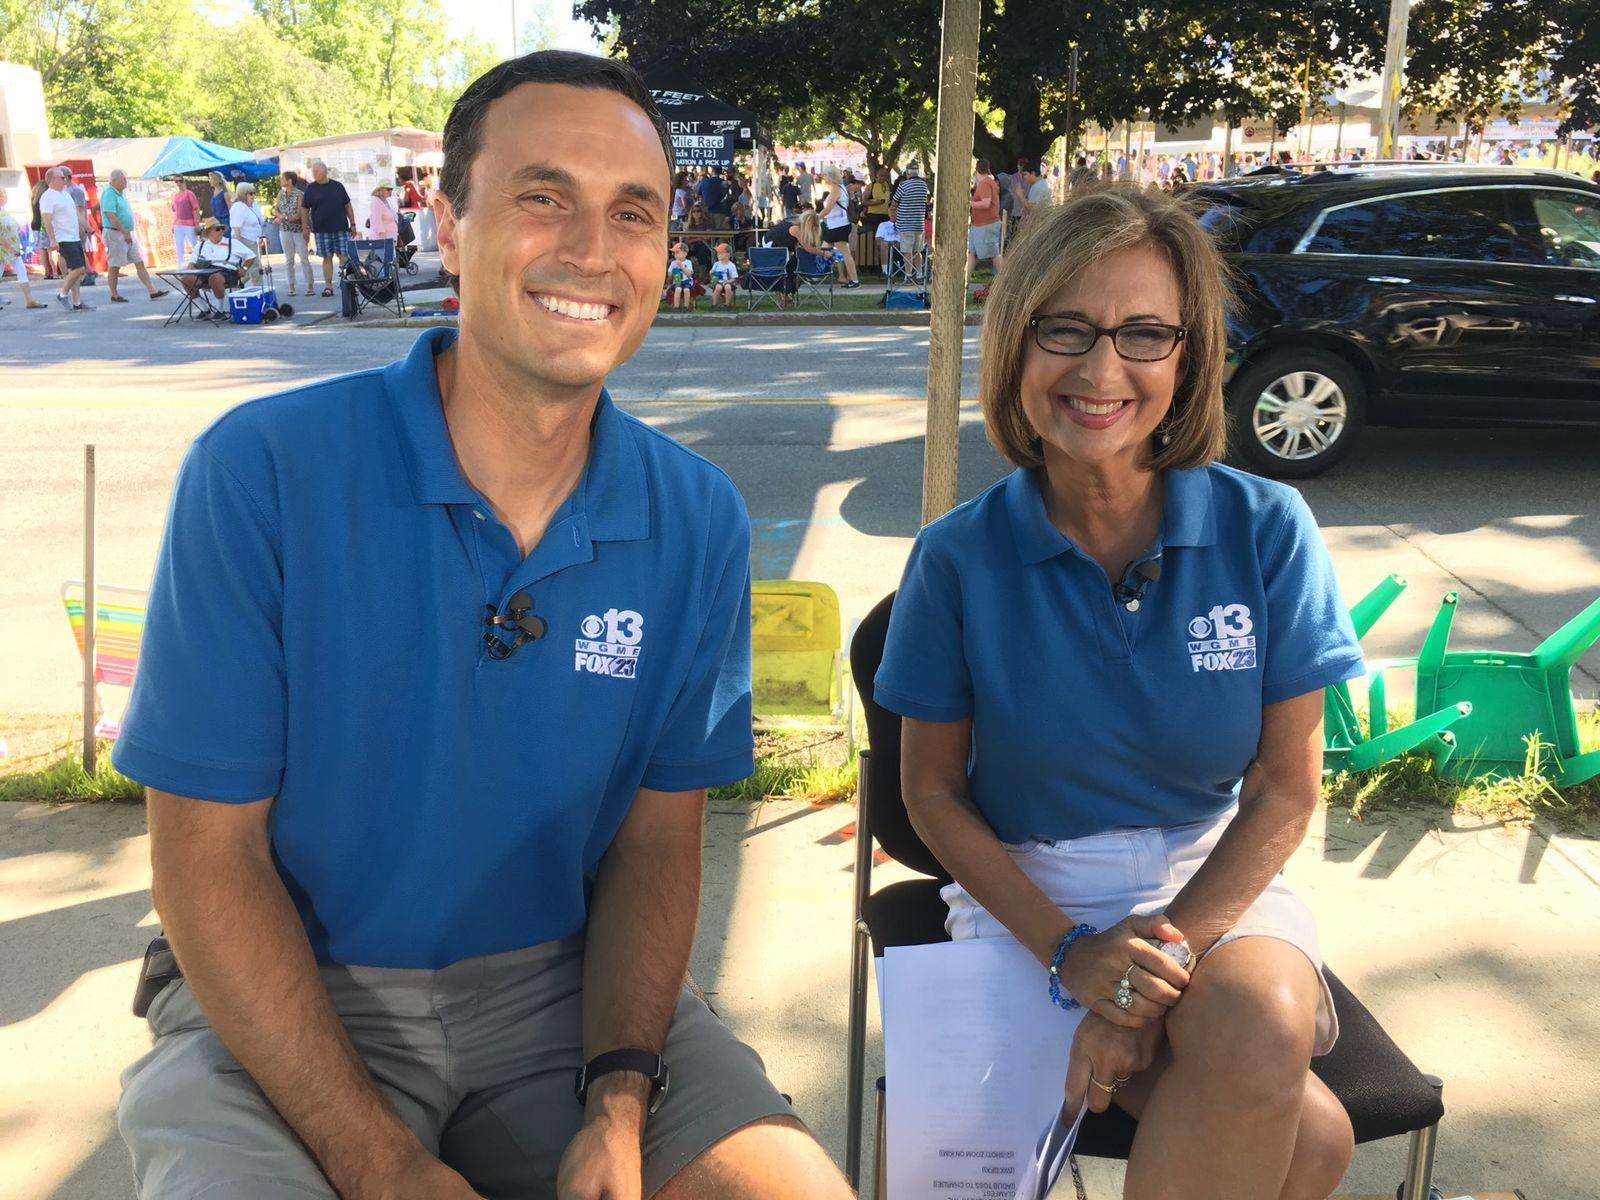 CBS 13 Chief Meteorologist Charlie Lopresti and Kim Block at Clam Fest in 2018 (WGME)